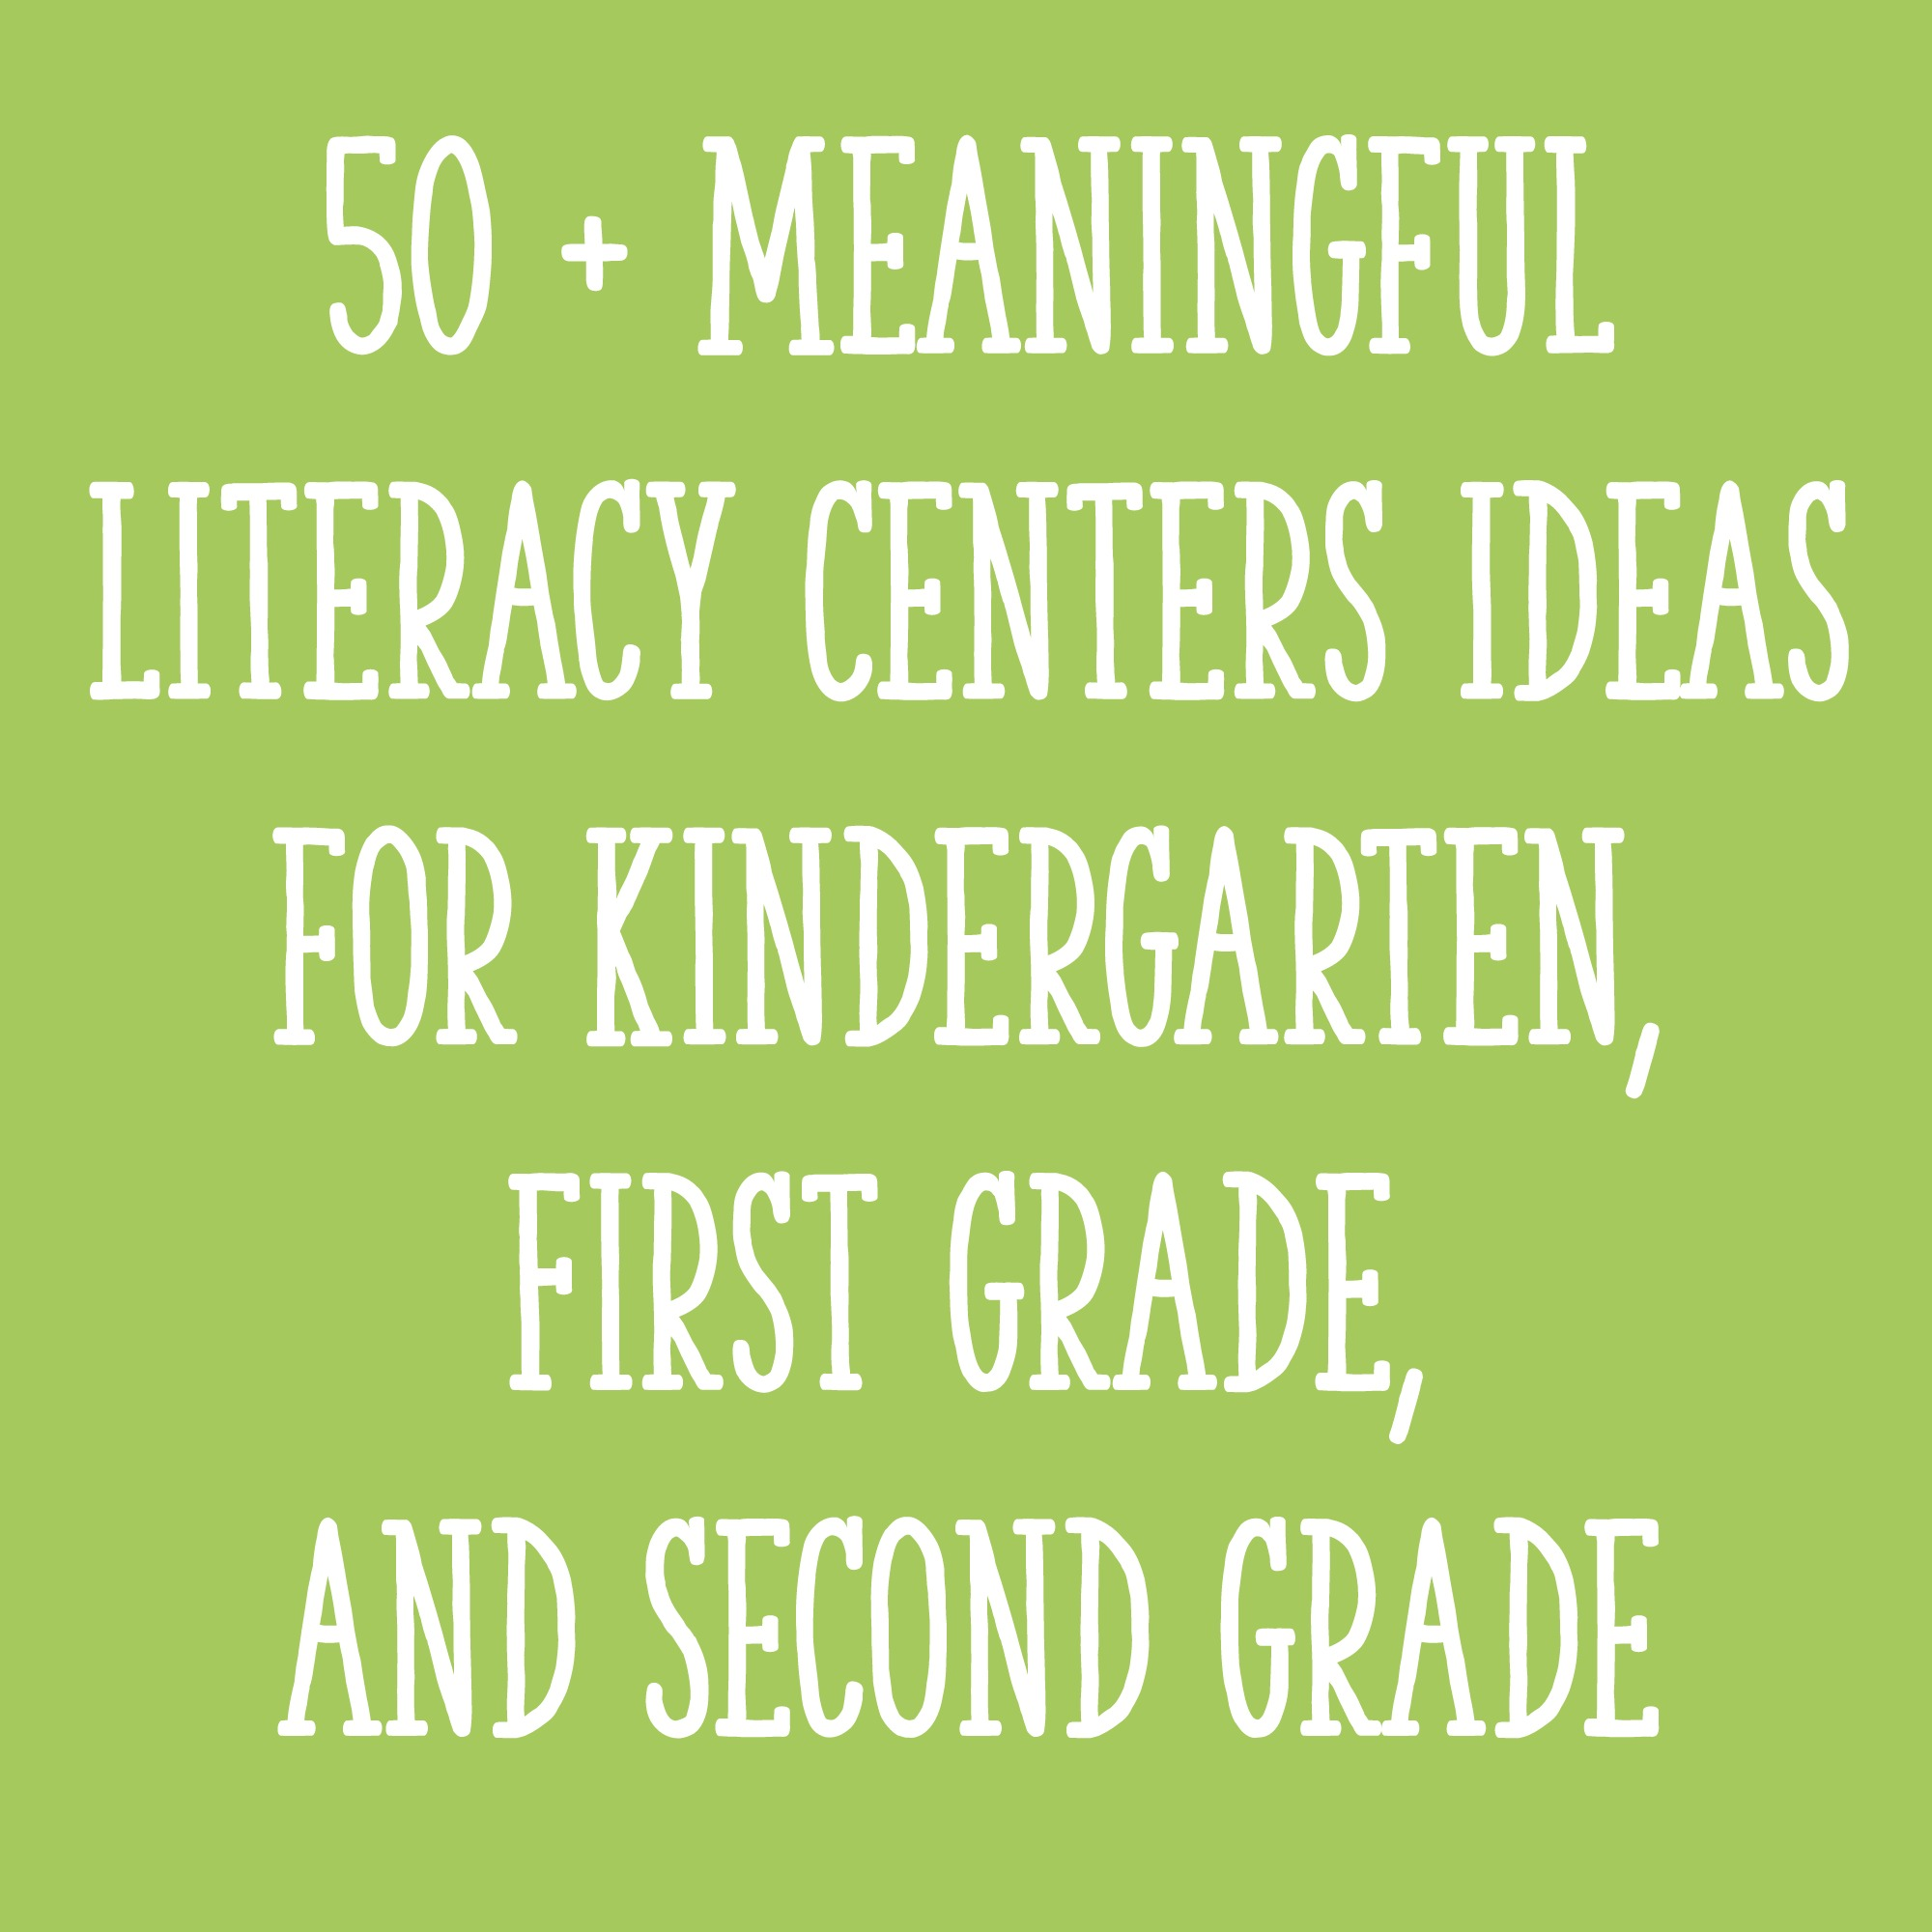 50 Meaningful Literacy Centers Ideas For Kindergarten First Grade And Second Grade